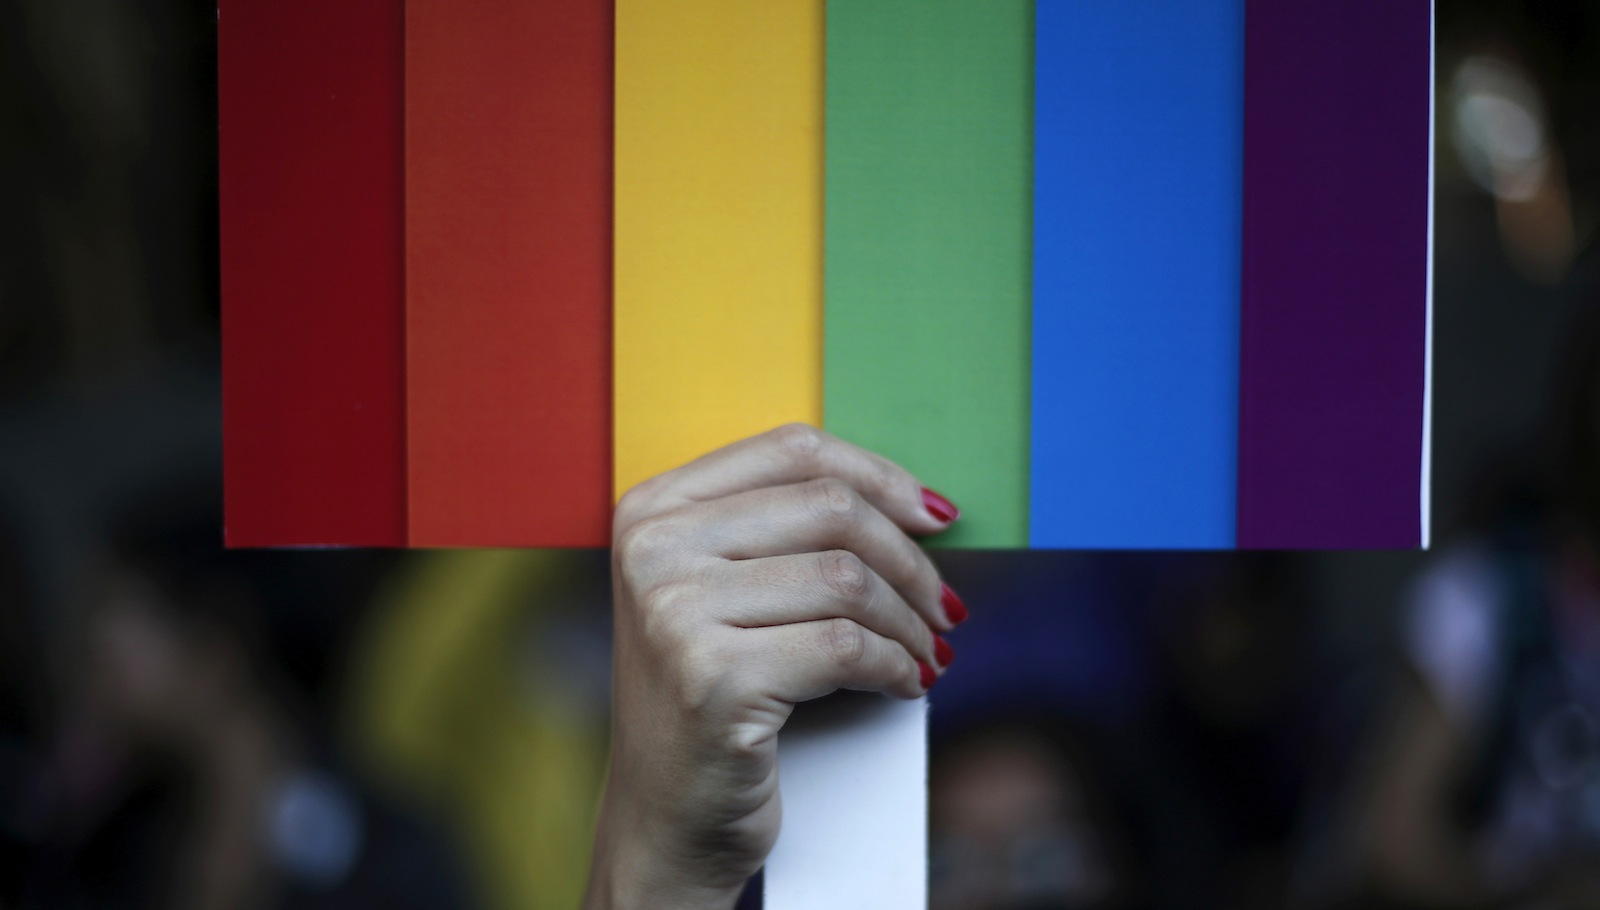 A participant holds a rainbow coloured placard during Delhi Queer Pride Parade, an event promoting gay, lesbian, bisexual and transgender rights, in New Delhi November 30, 2014. Hundreds of participants on Sunday took part in a parade demanding freedom and safety of their community, according to a media release.